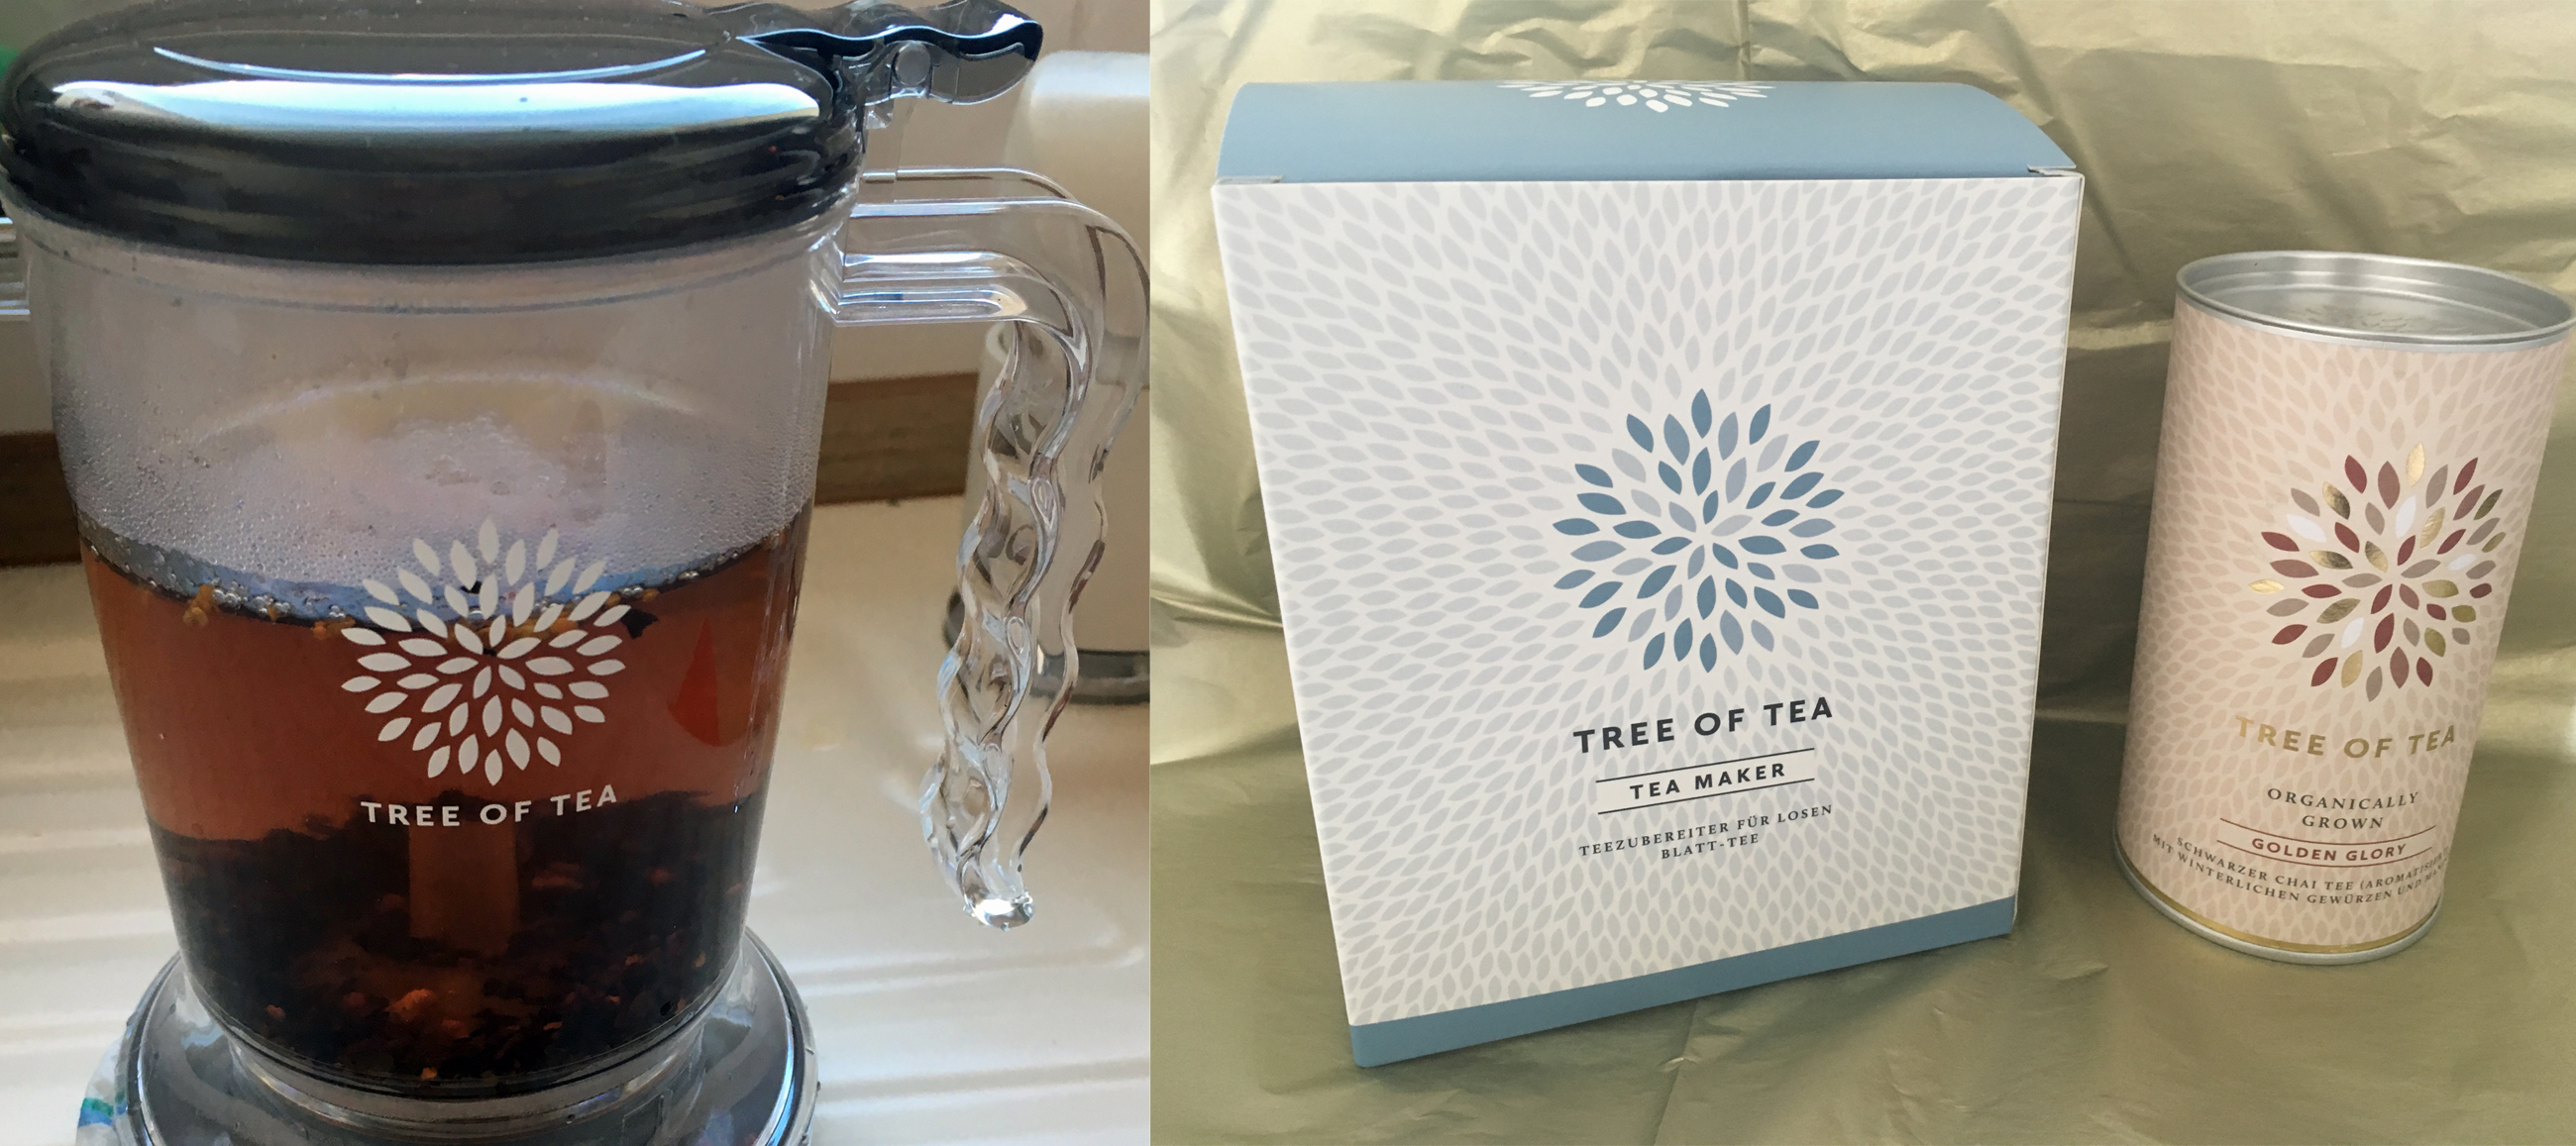 Tree of Tea Tea maker